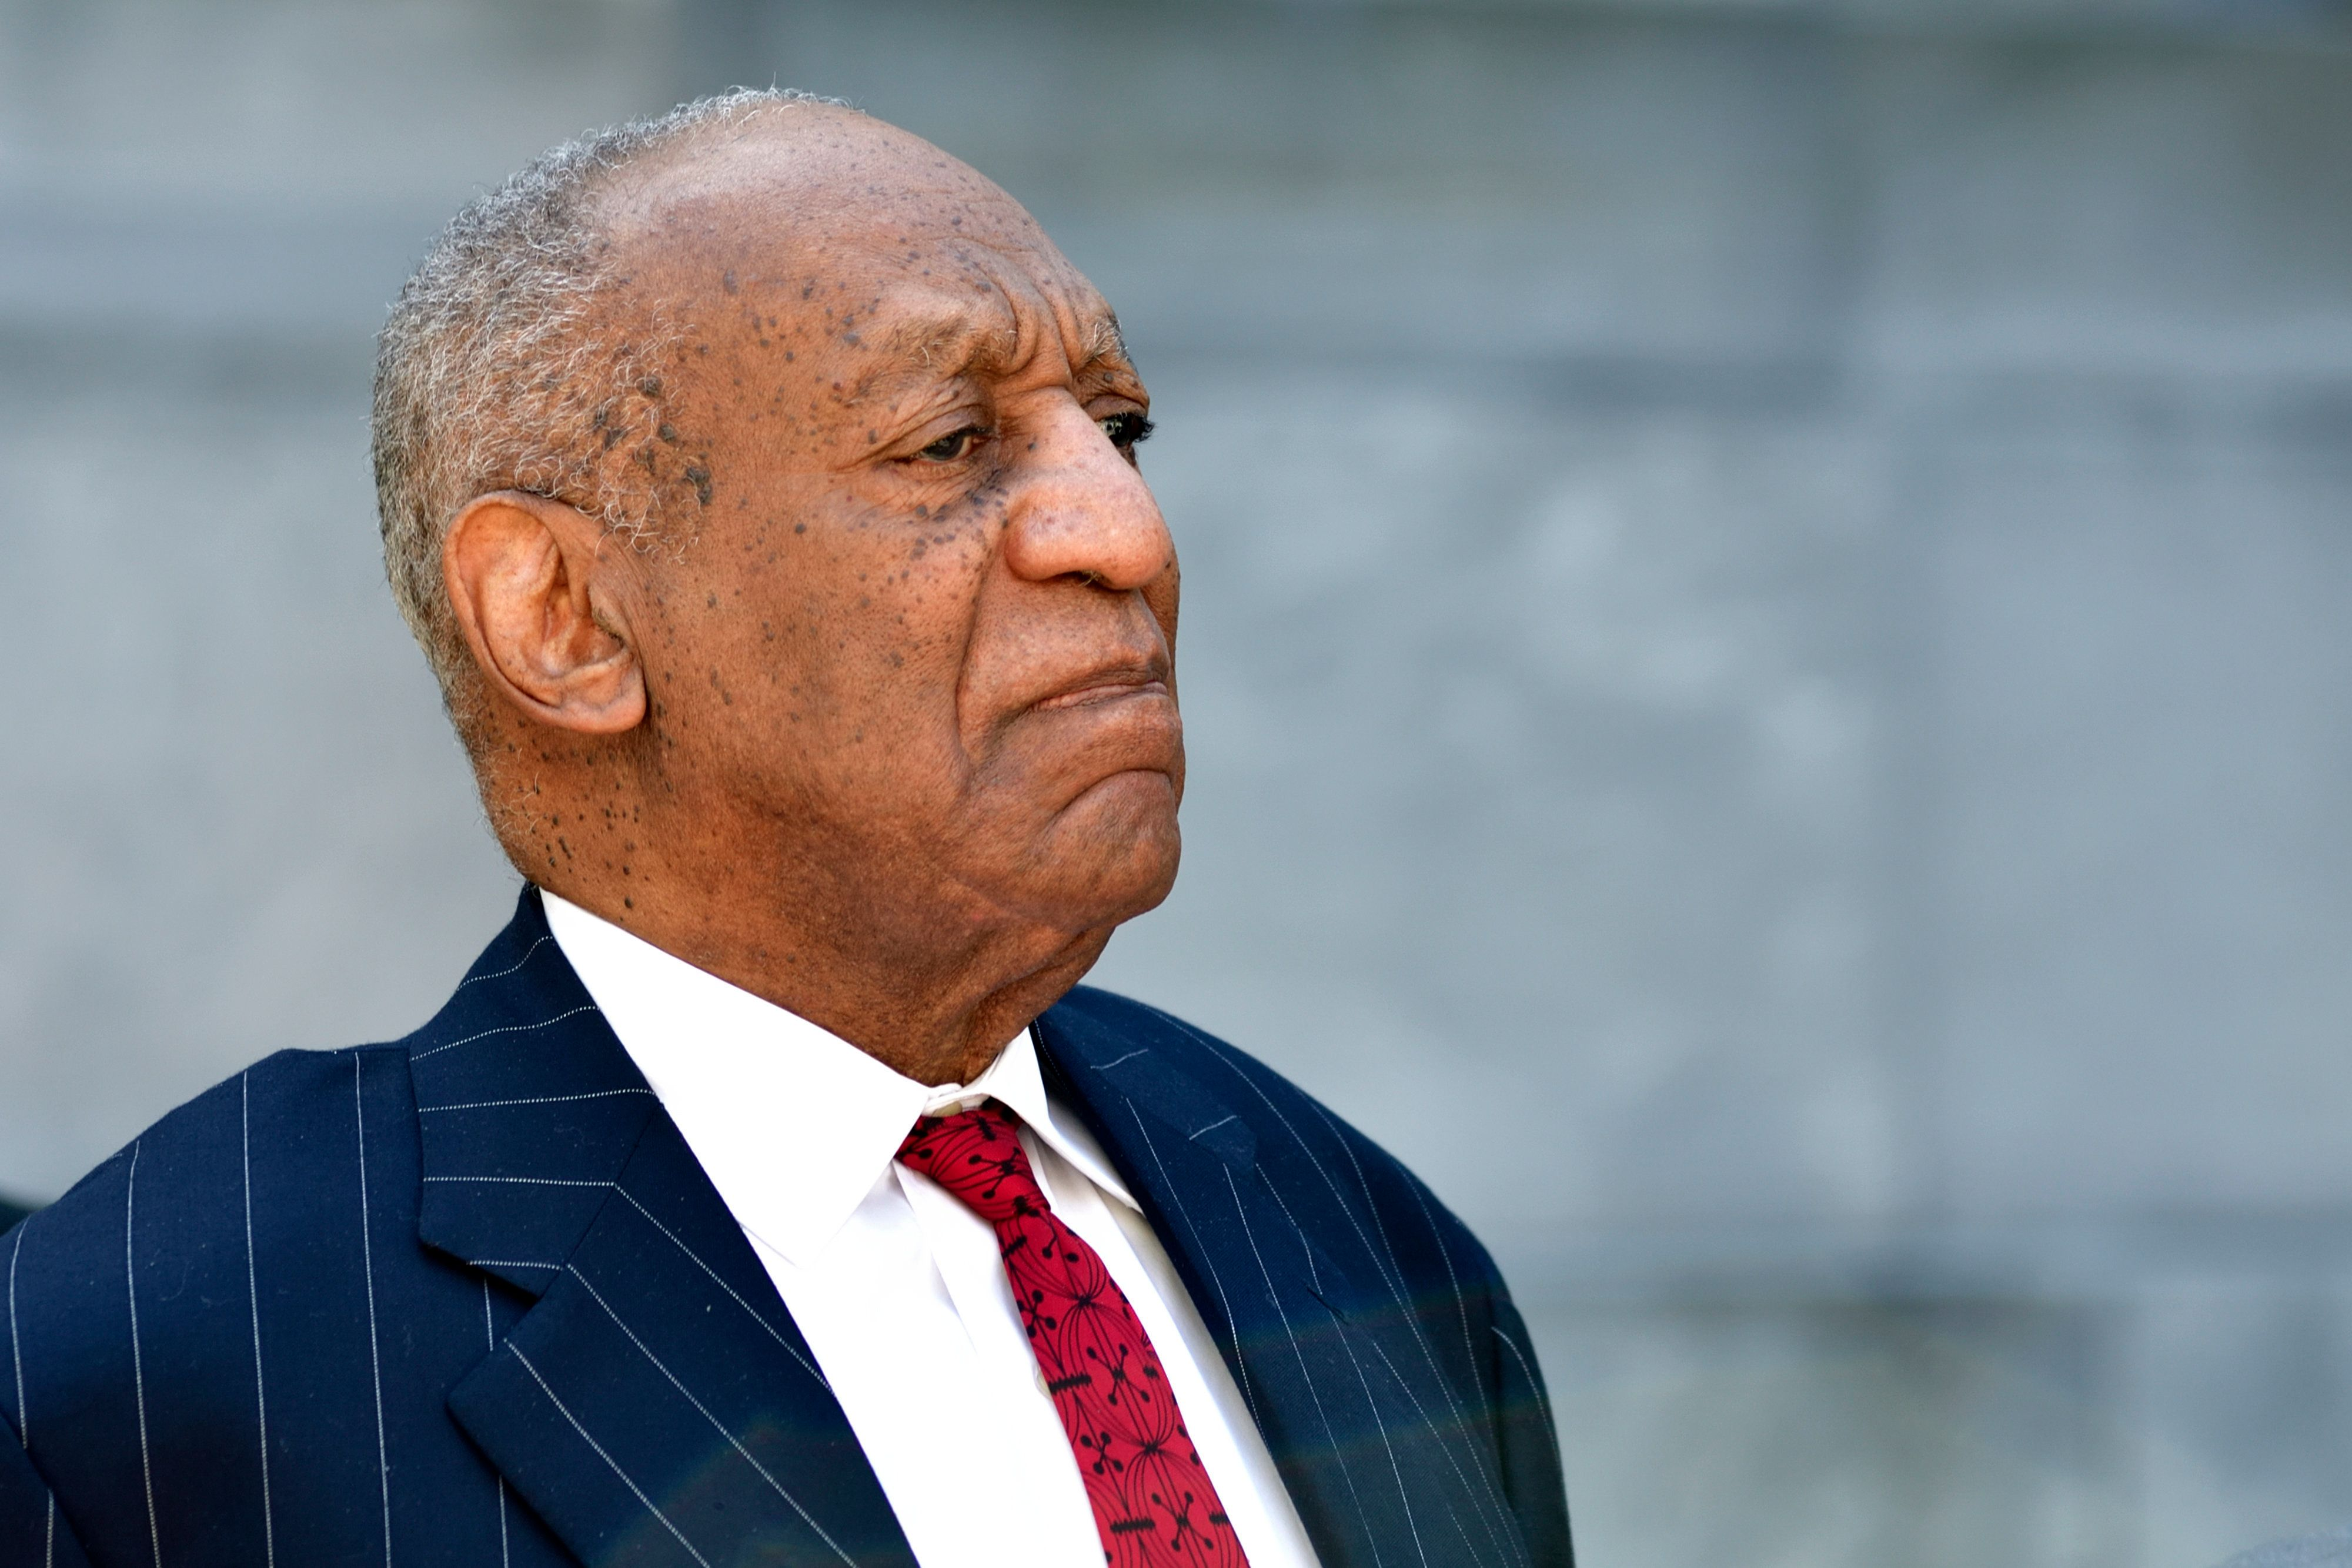 Bill Cosby departs after day 10 of the sexual assault trial of the 80 year old comedian and actor at Montgomery County Court House in Norristown, PA, on April 20, 2018. (Photo by Bastiaan Slabbers/NurPhoto via Getty Images)